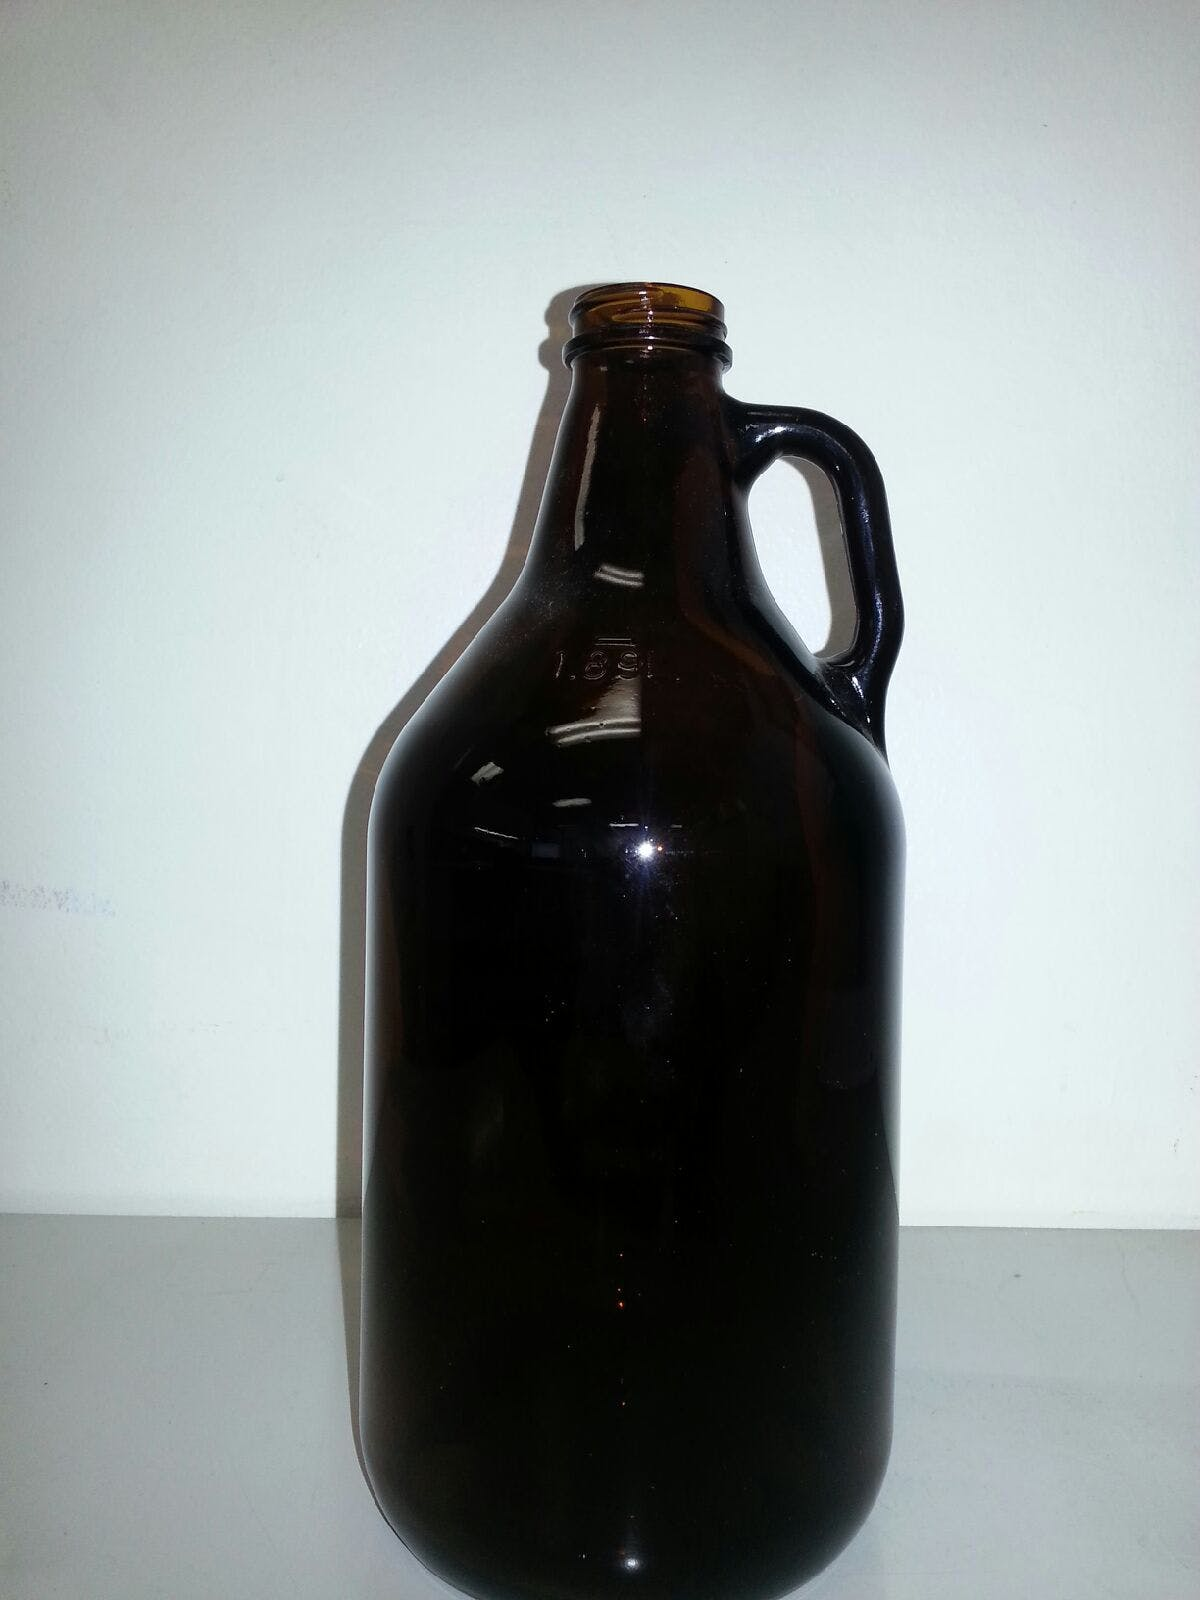 32 oz amber beer growler with screw top Growler sold by Bottle Solutions